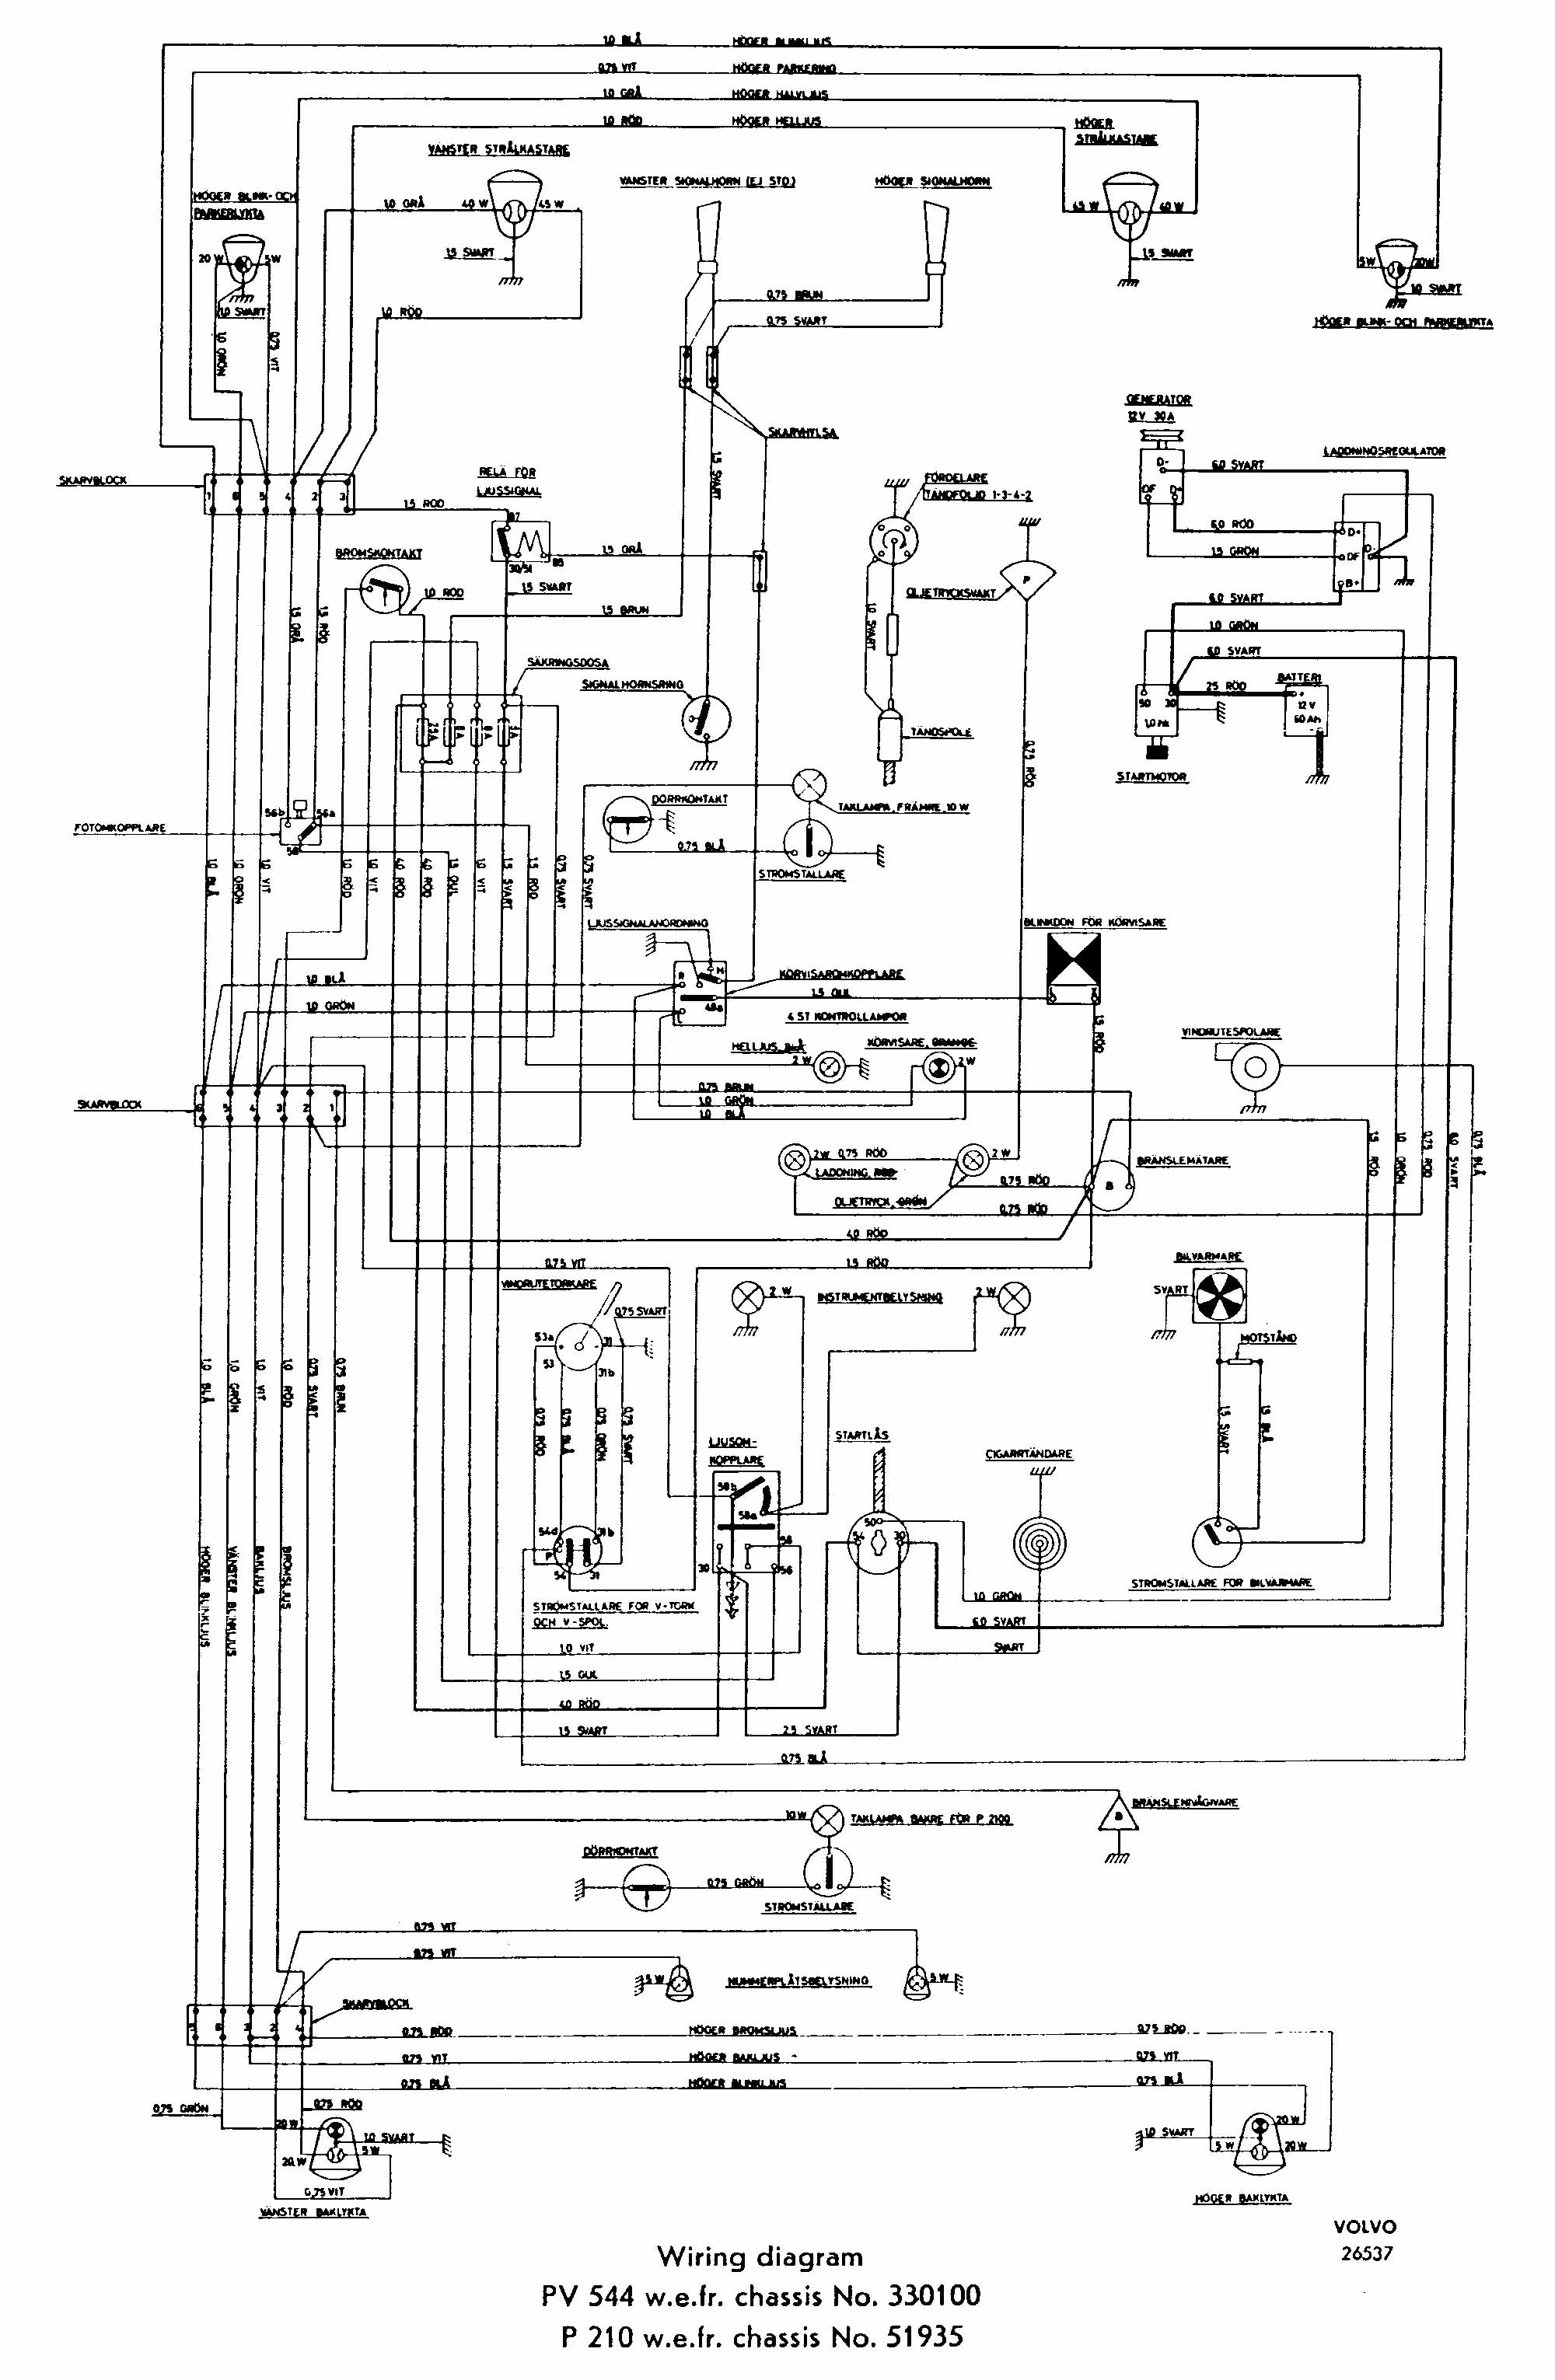 544 Wiring Diagram sw em fuses, allocation and troubleshooting volvo amazon wiring diagram at soozxer.org